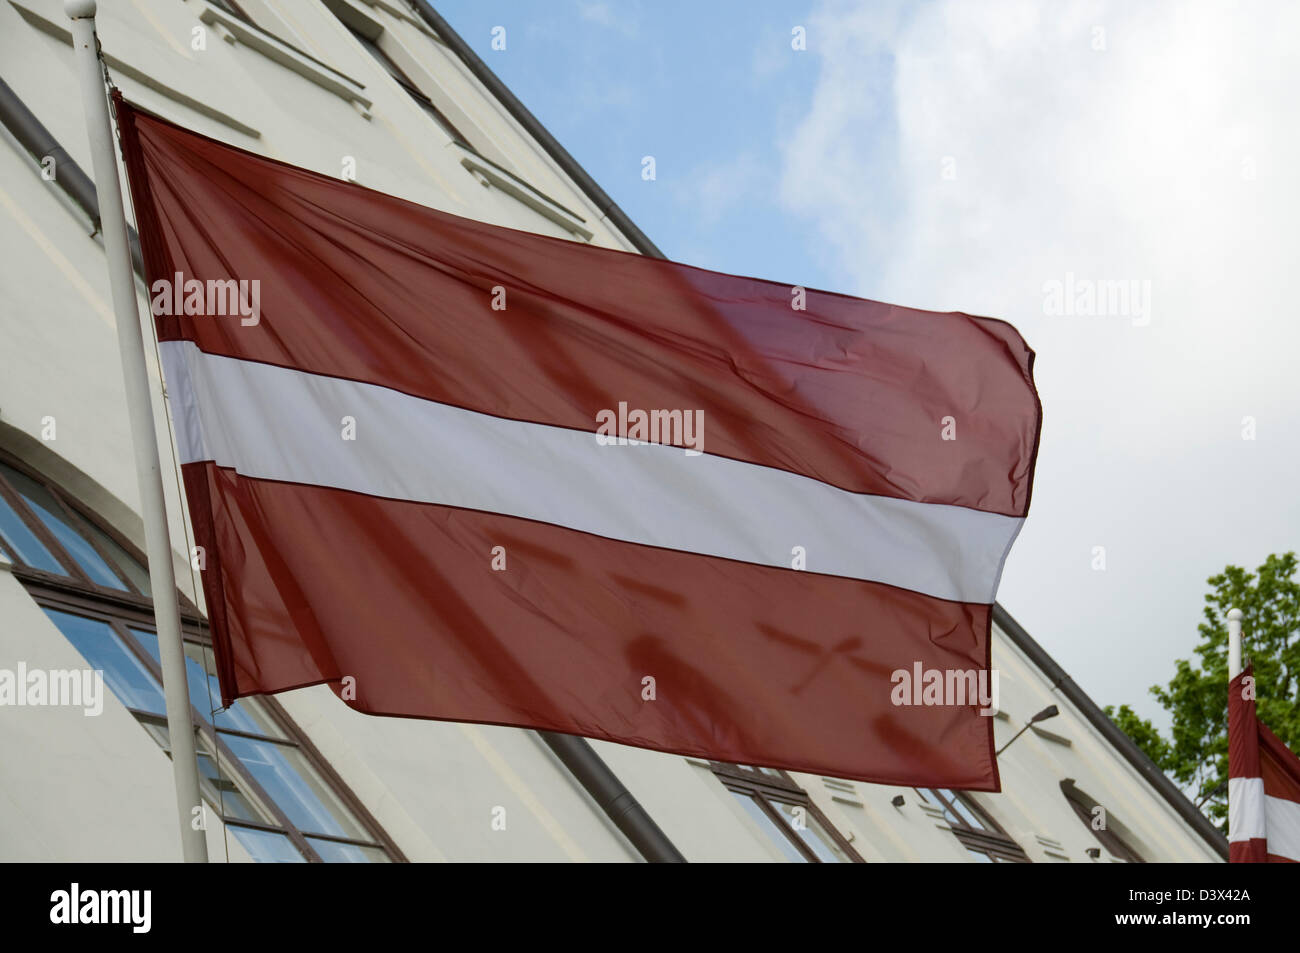 The national flag of the Republic of Latvia Baltic States Stock Photo